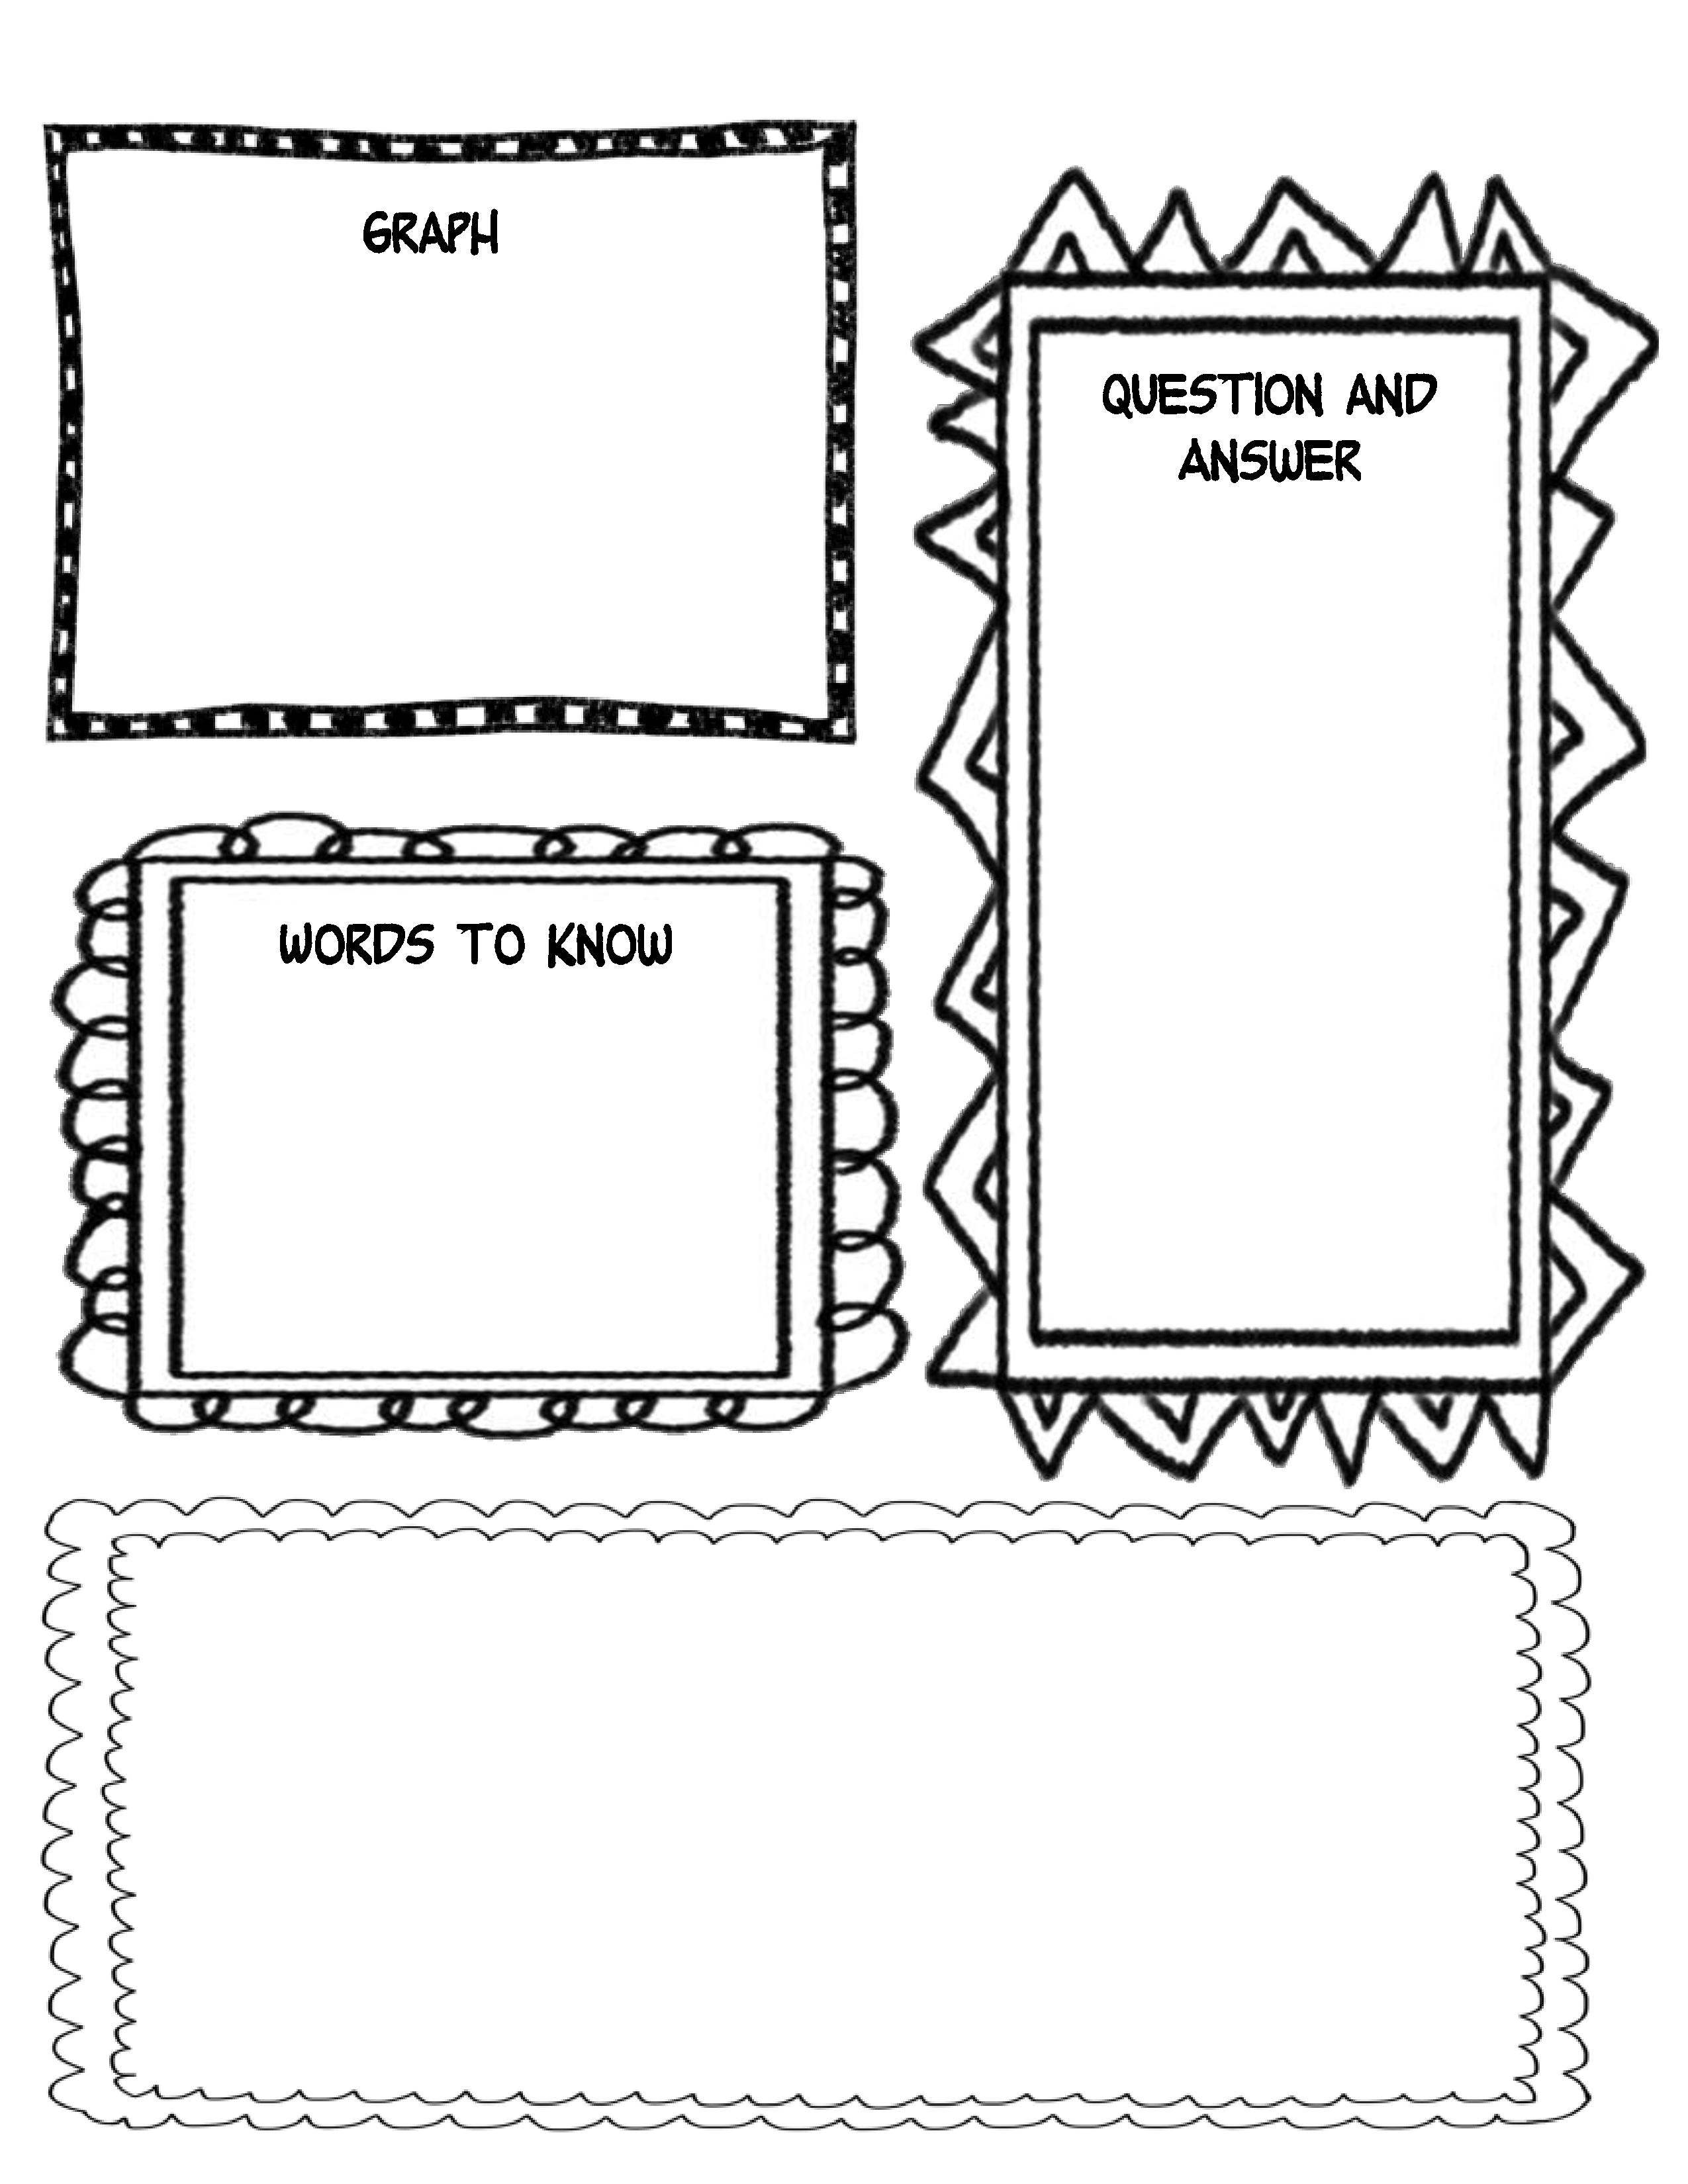 18 Best Images of Elements Of Fiction Worksheets For